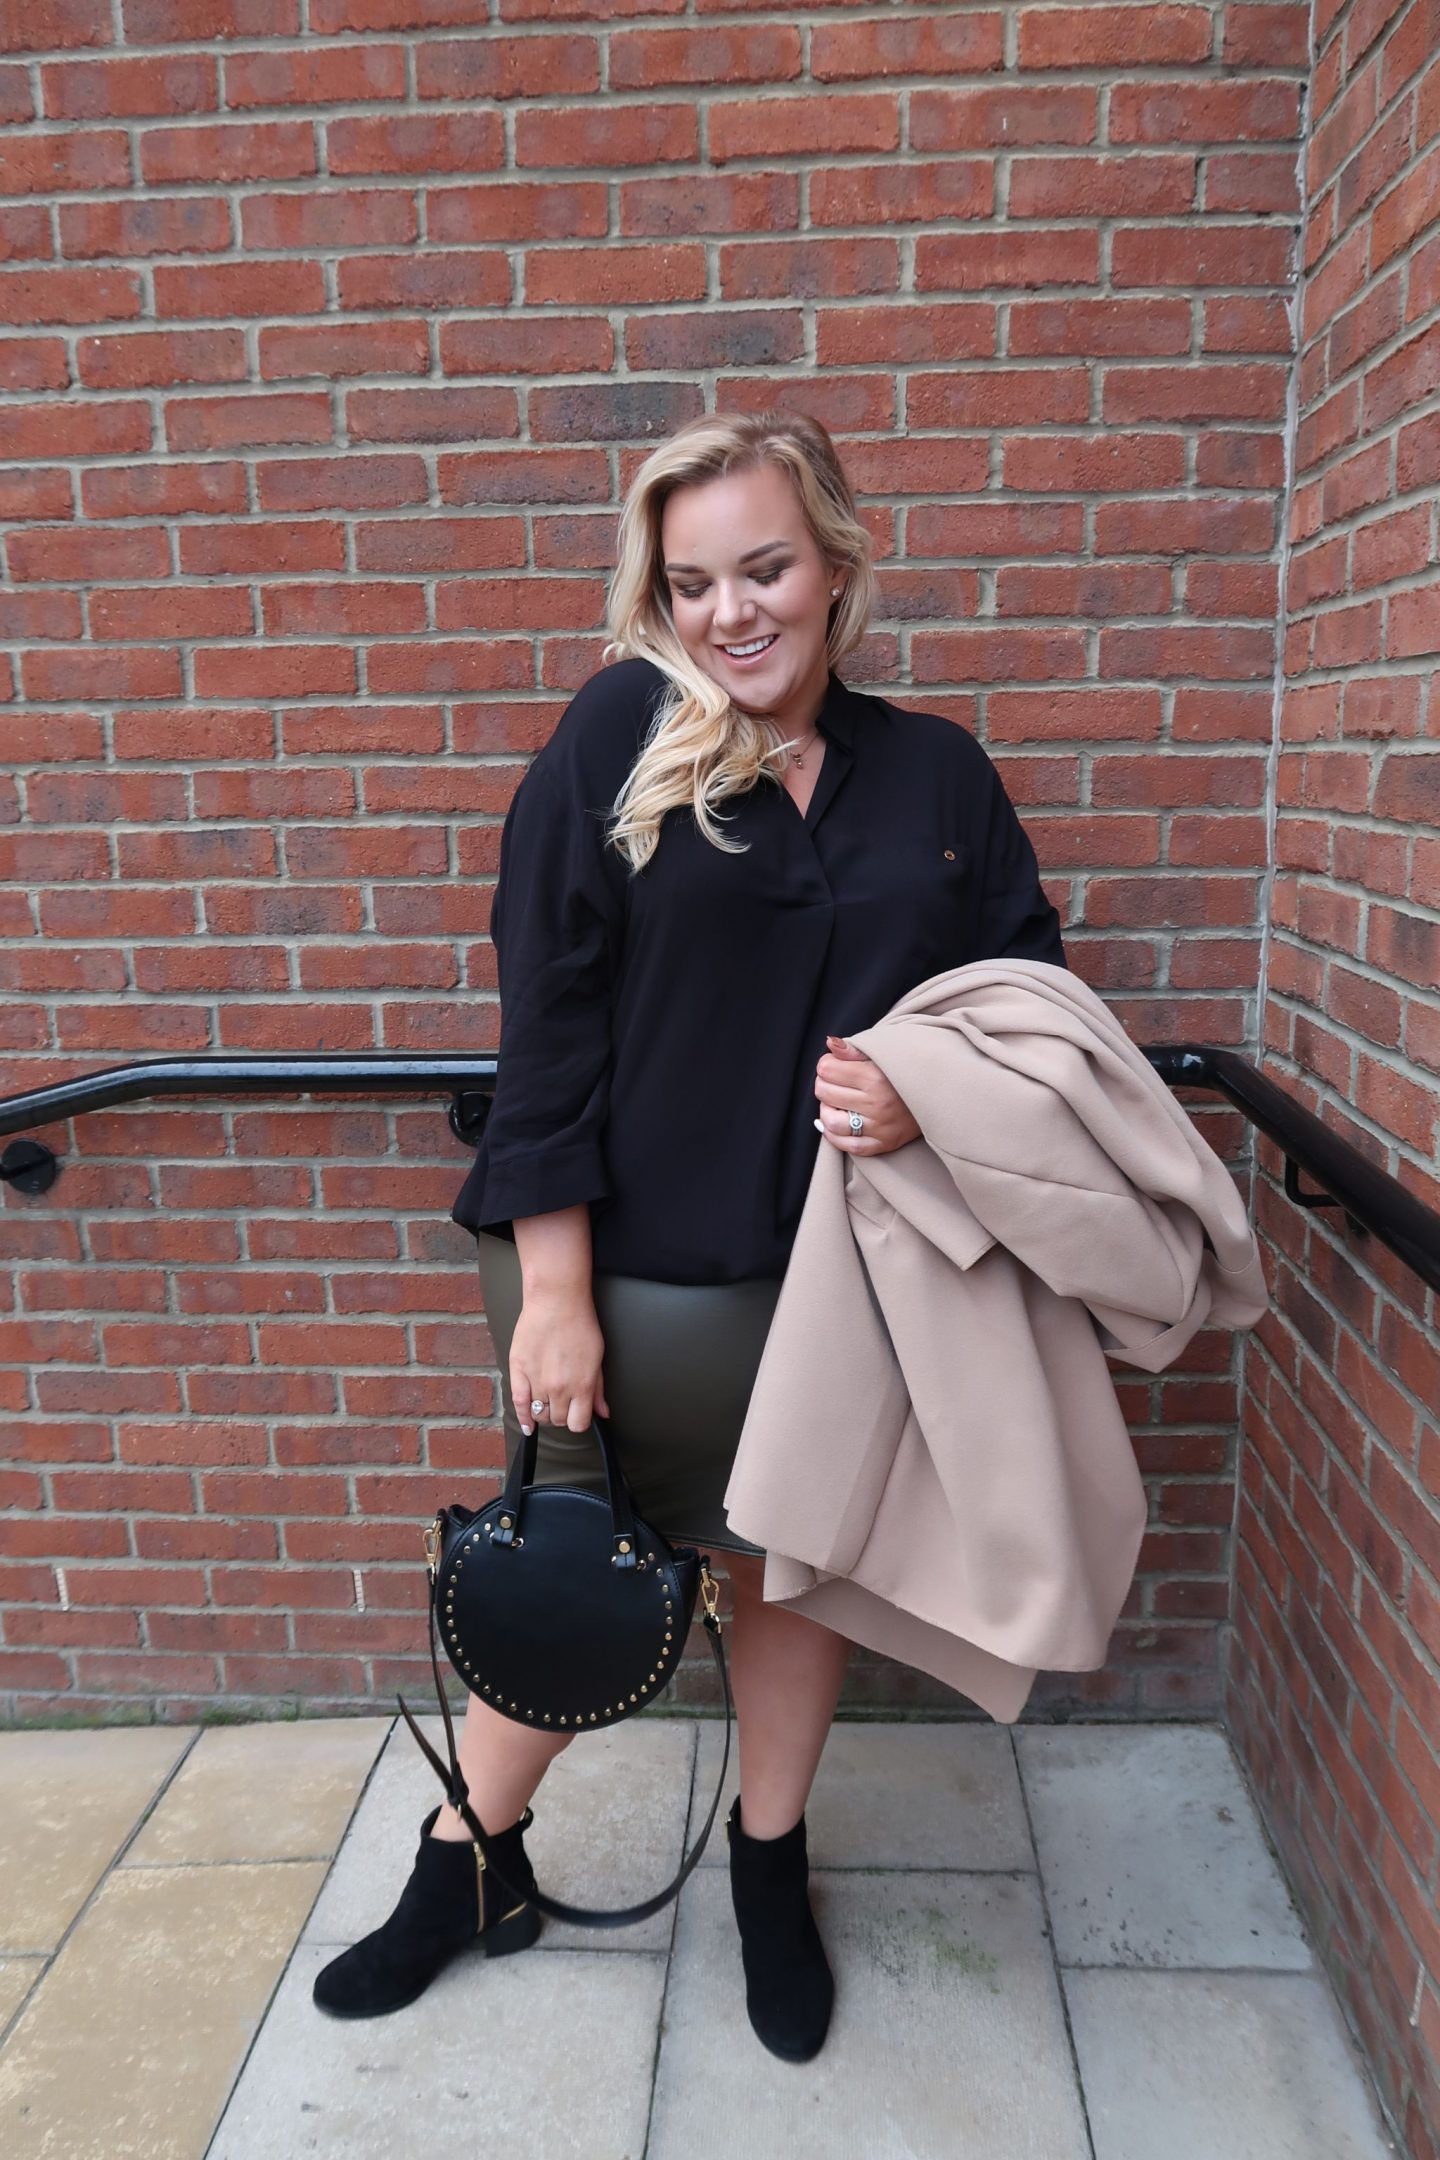 UK Plus Size Blogger WhatLauraLoves wearing River Island, Boohoo and PrettyLittleThing